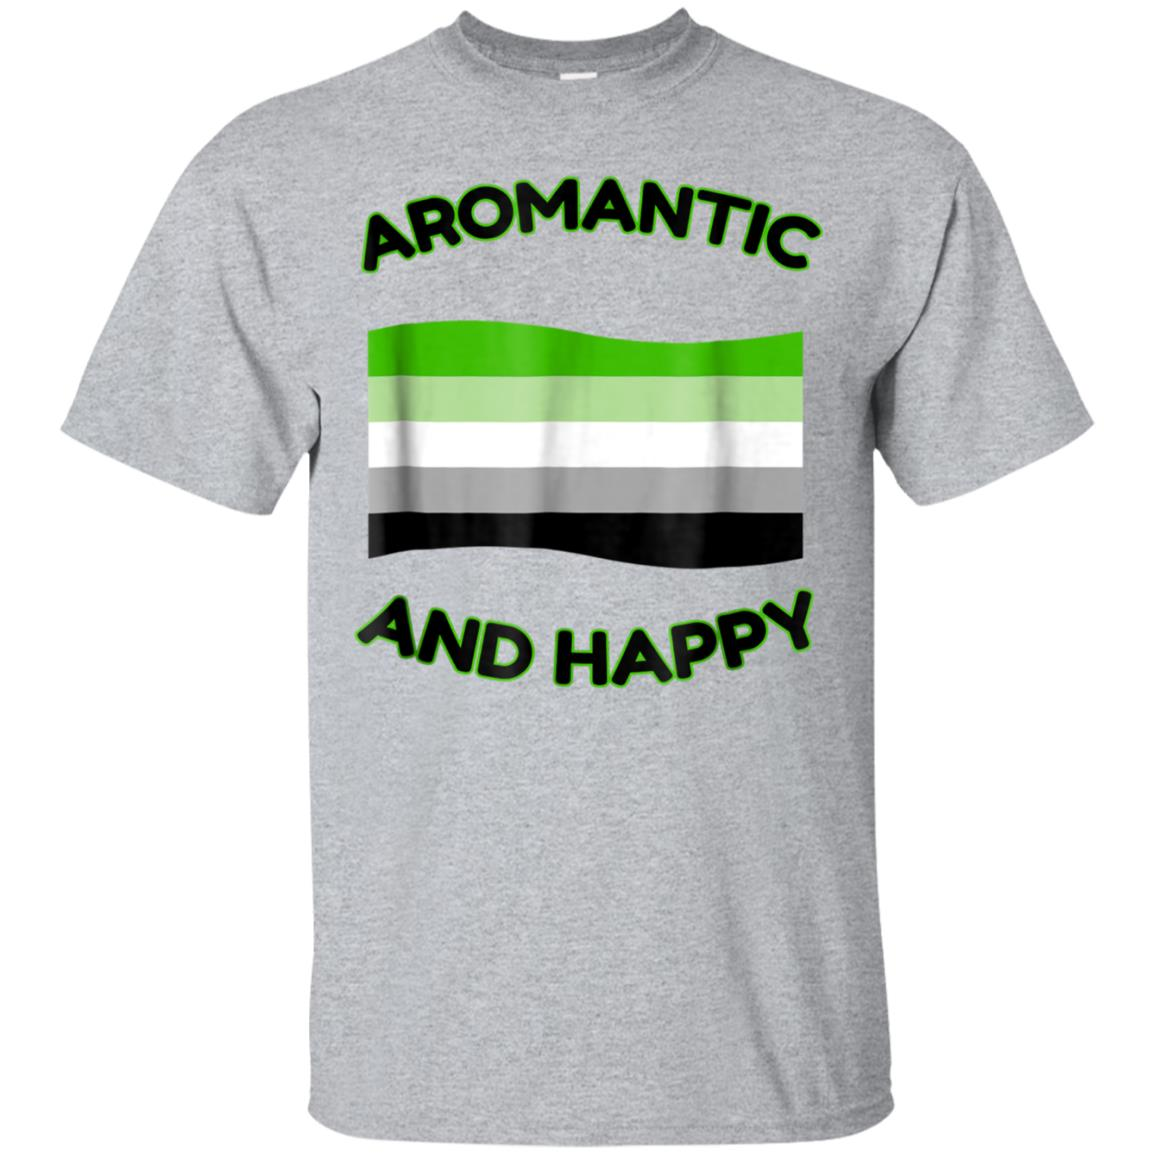 Aromantic And Happy T-Shirts LGBT Flag 99promocode